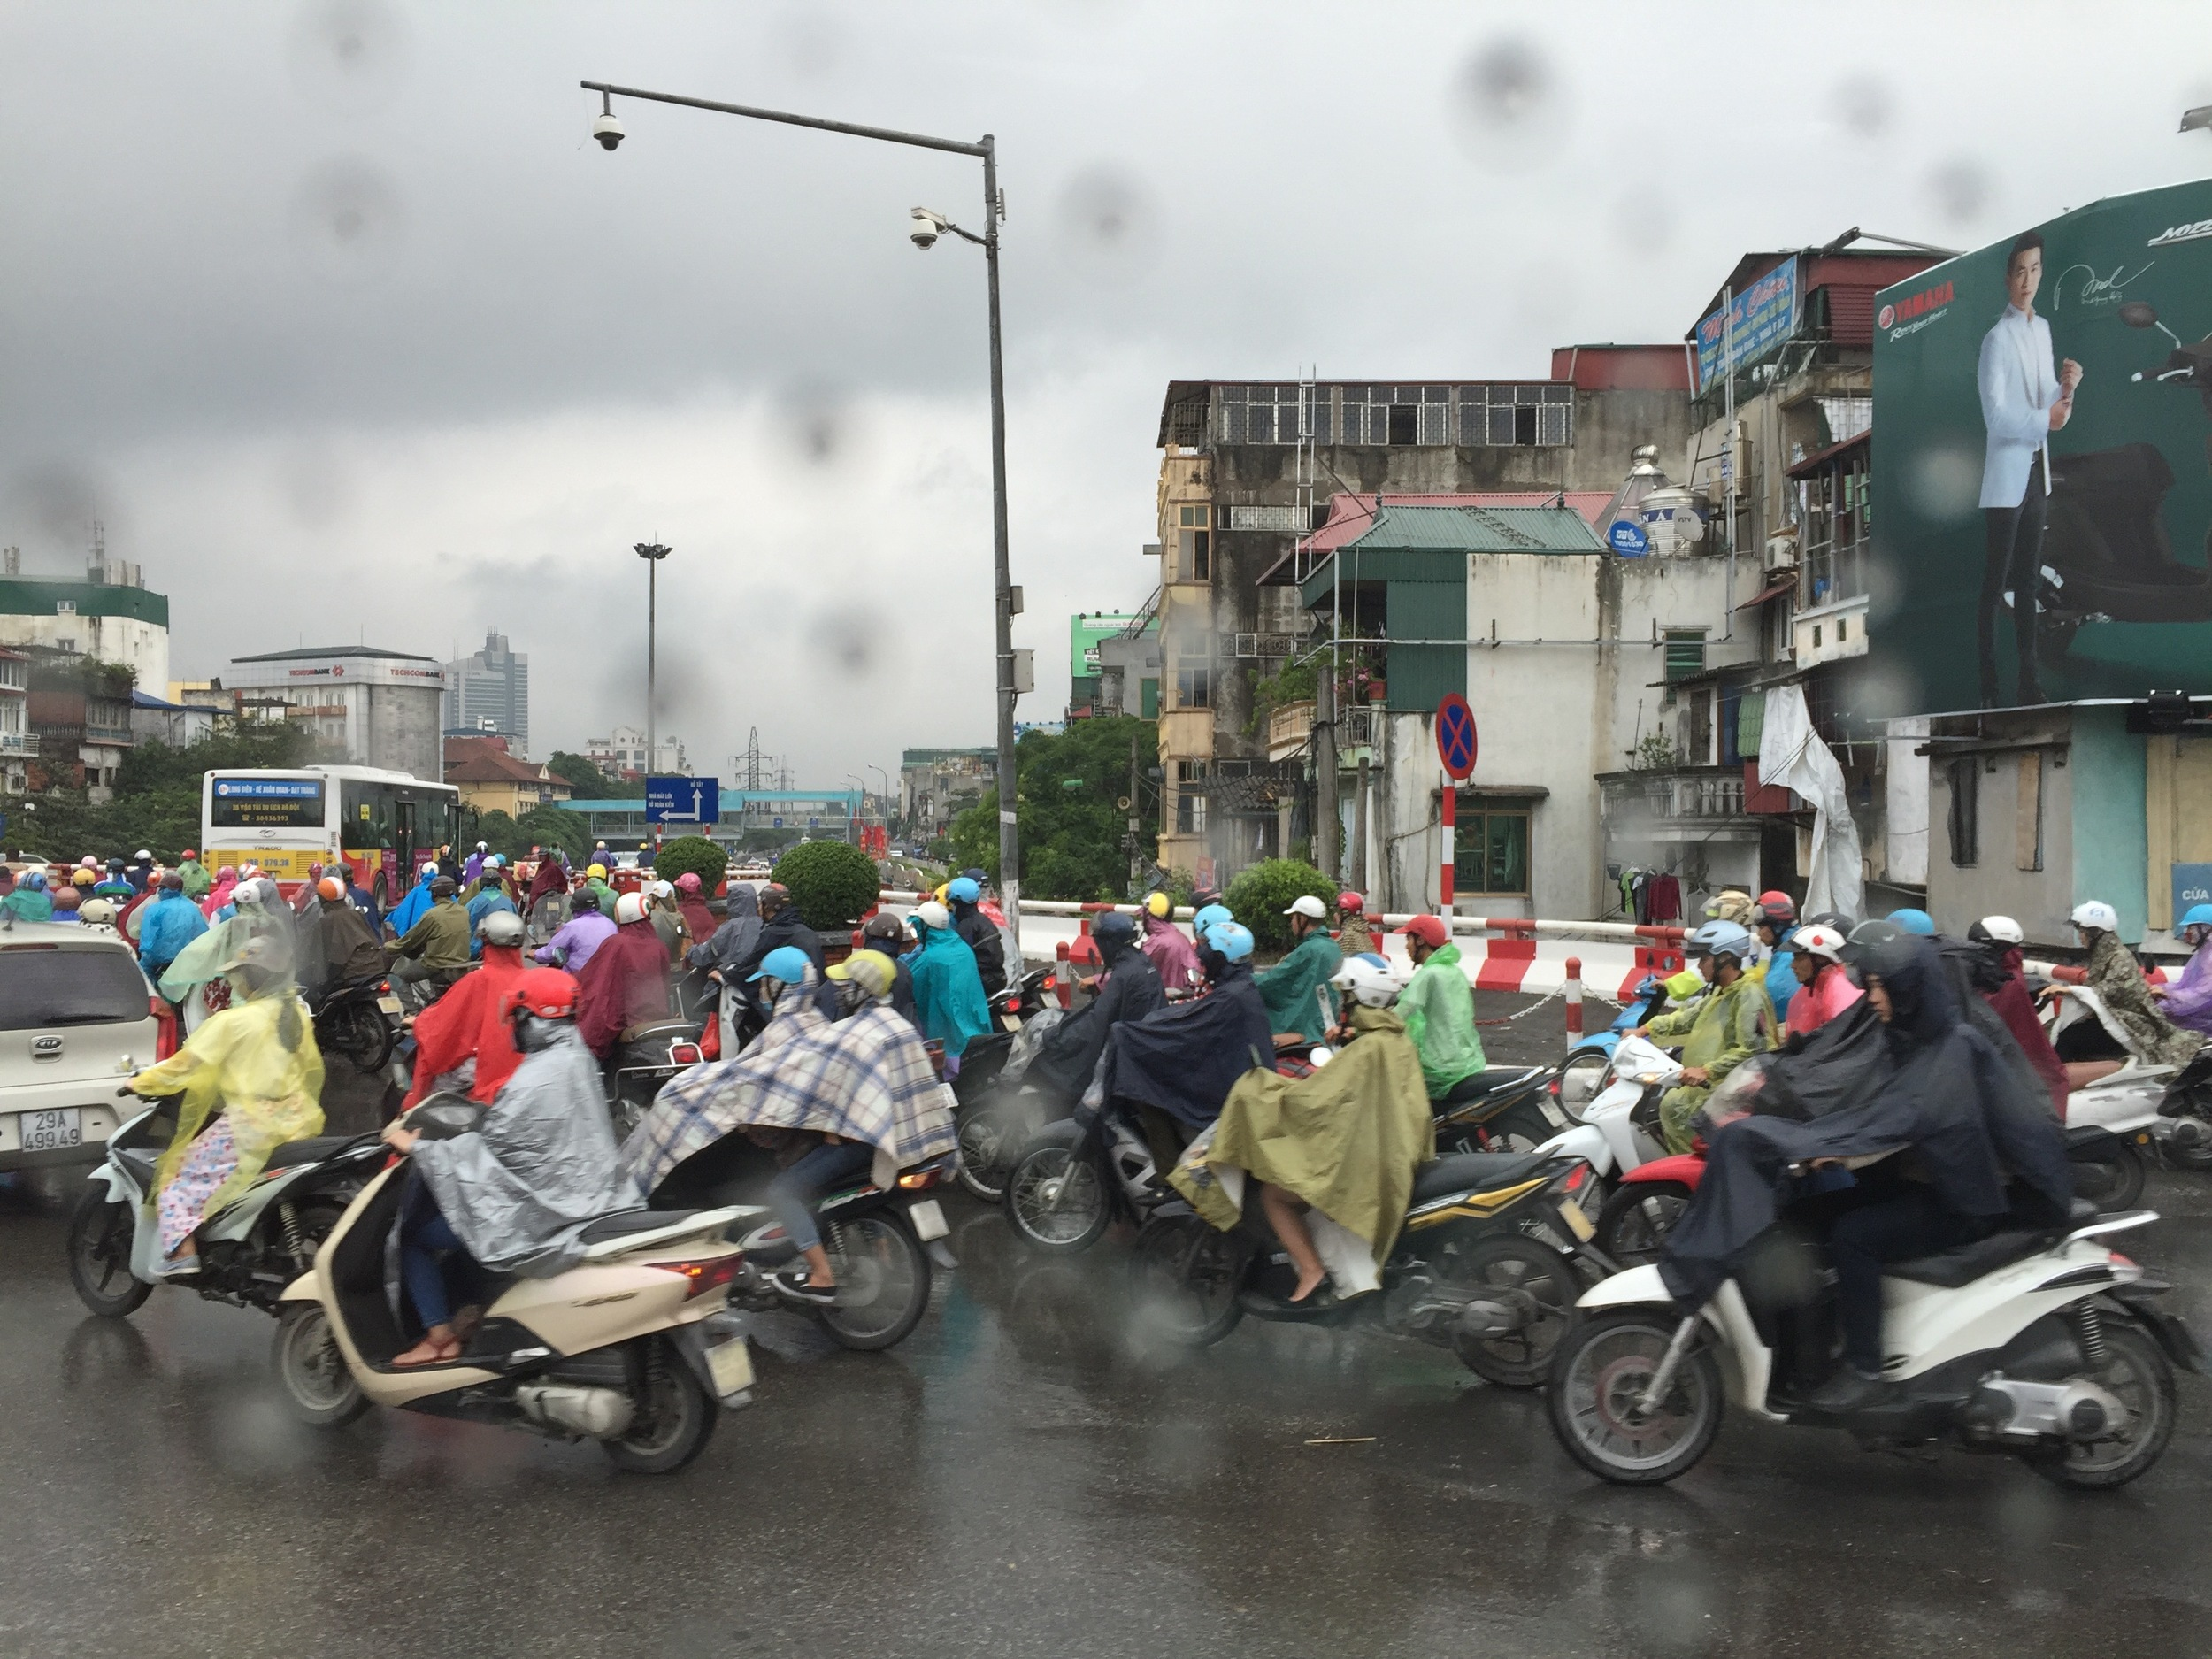 Everybody apparently rides a motorbike in the cities of Vietnam. Here in Hanoi, poncho-clad motorbikers barely seem to notice the downpour as they forge ahead.